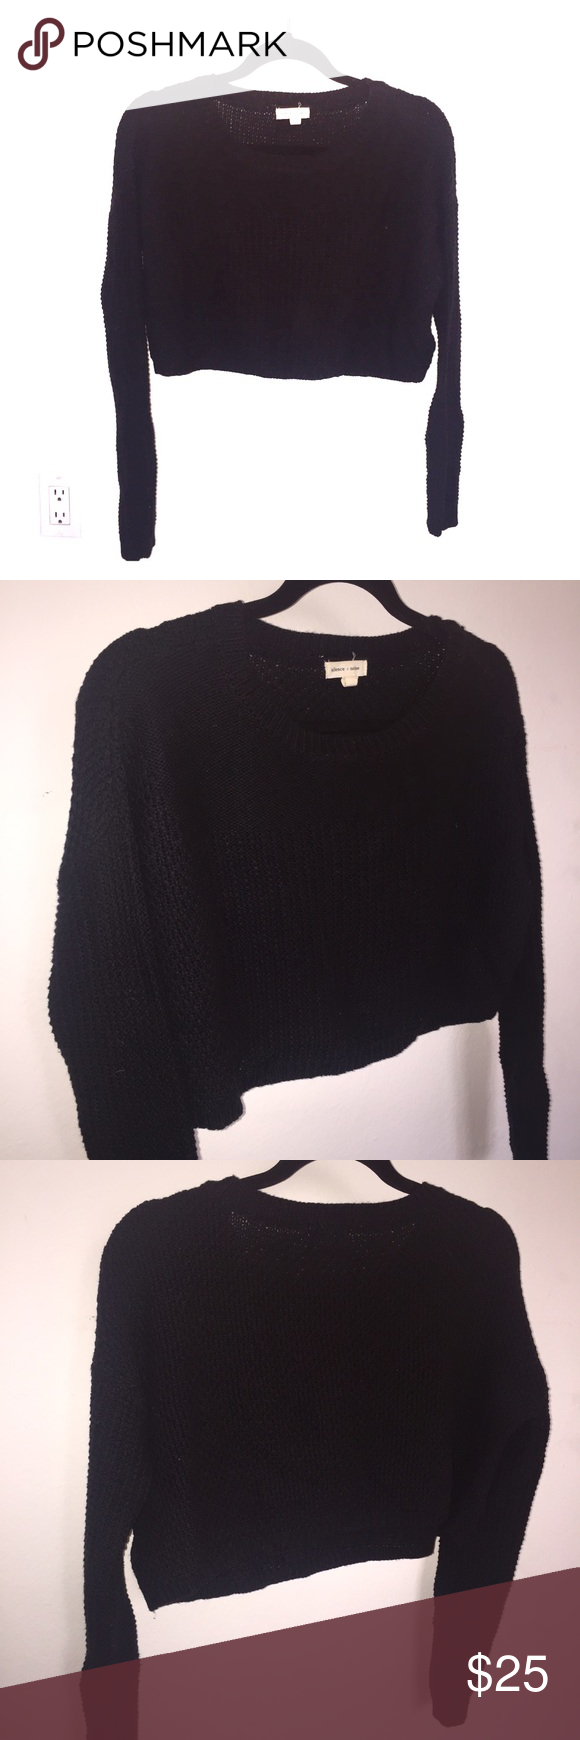 Knitted long sleeve black crop top. Size XS Knitted long sleeve black crop top. Size XS Tops